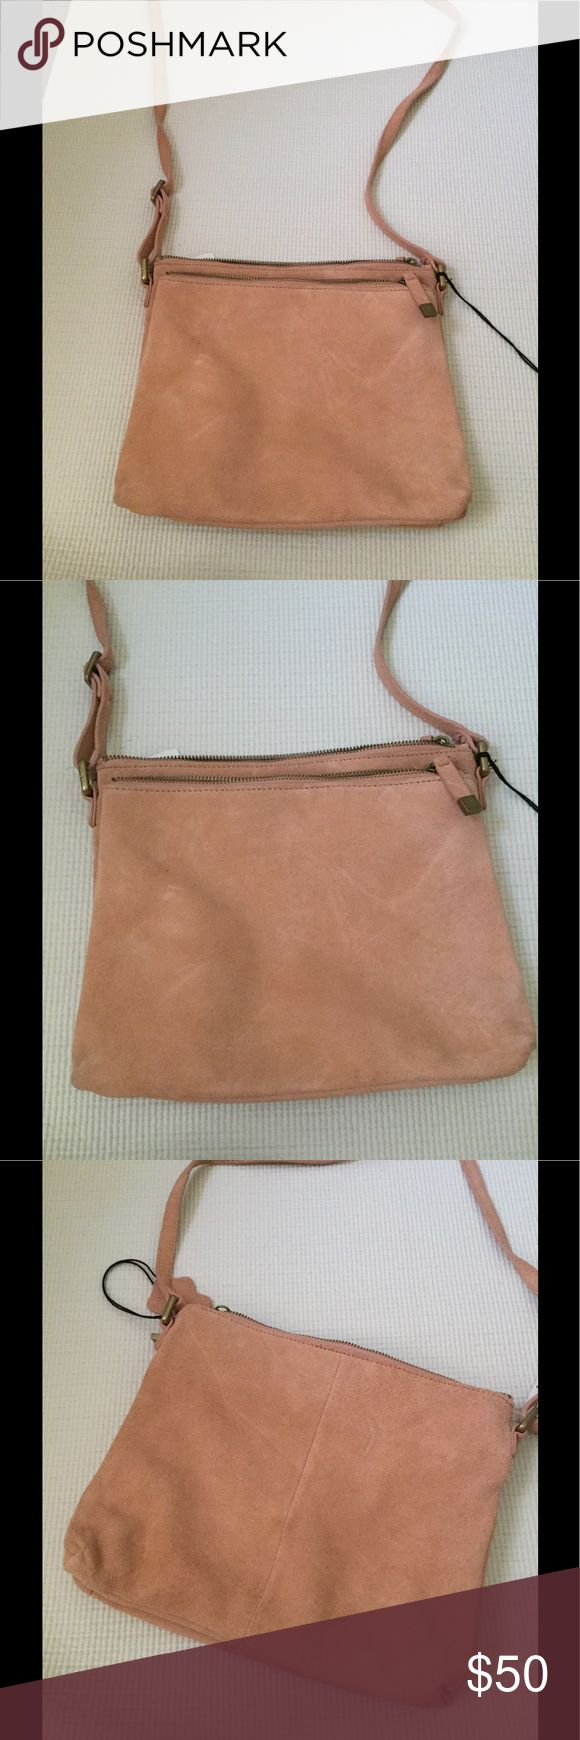 Margot genuine leather suede purse Brand new margot Bags Crossbody Bags